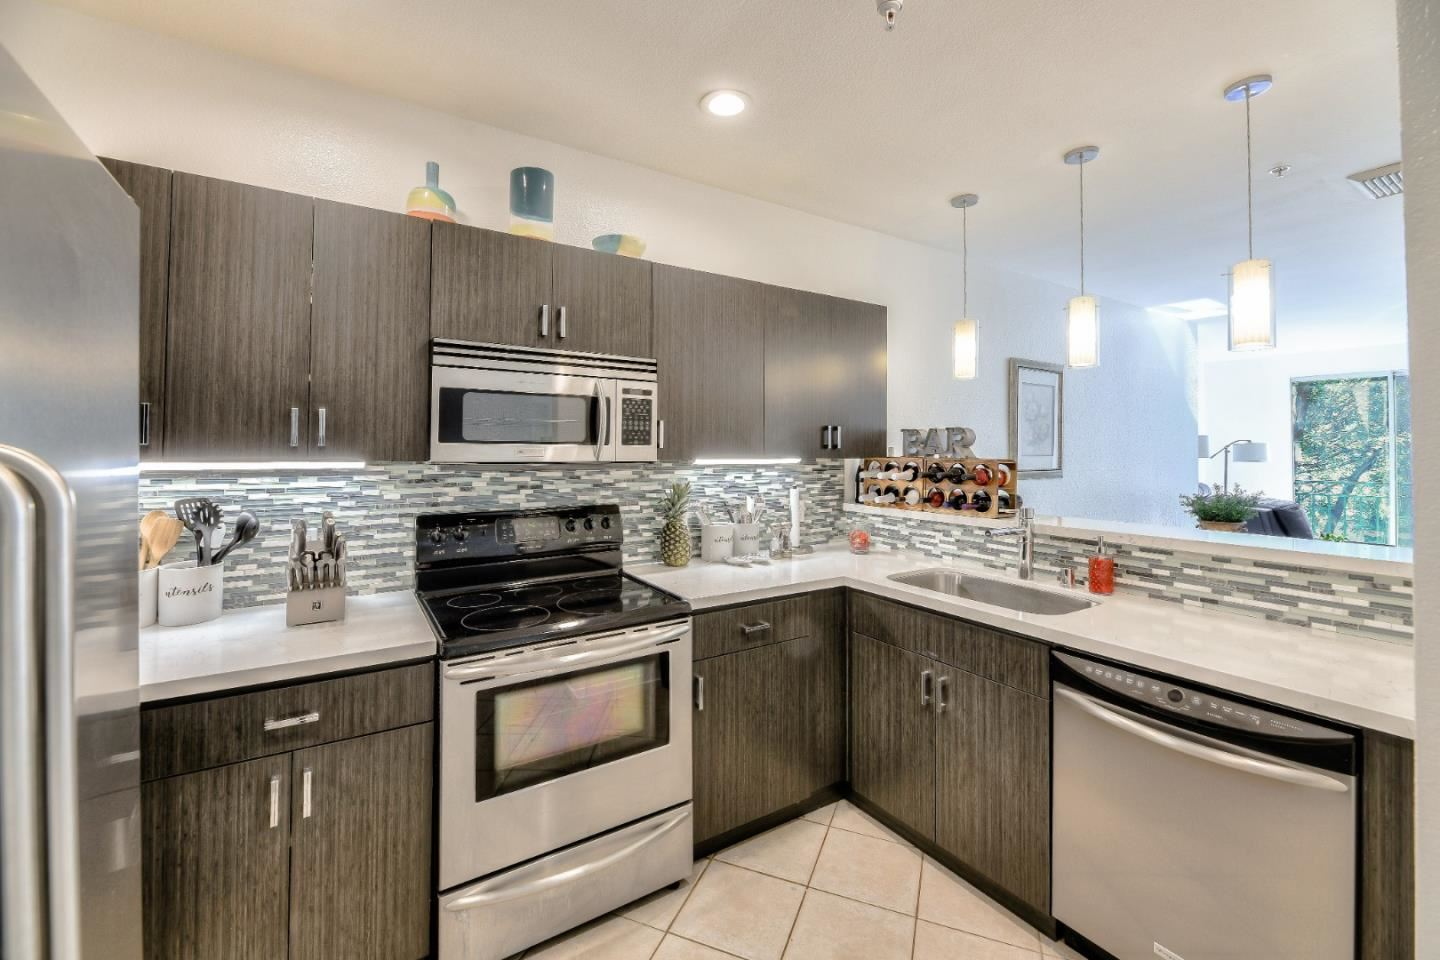 Photo for 951 S 12th ST 219 #219, SAN JOSE, CA 95112 (MLS # ML81814470)